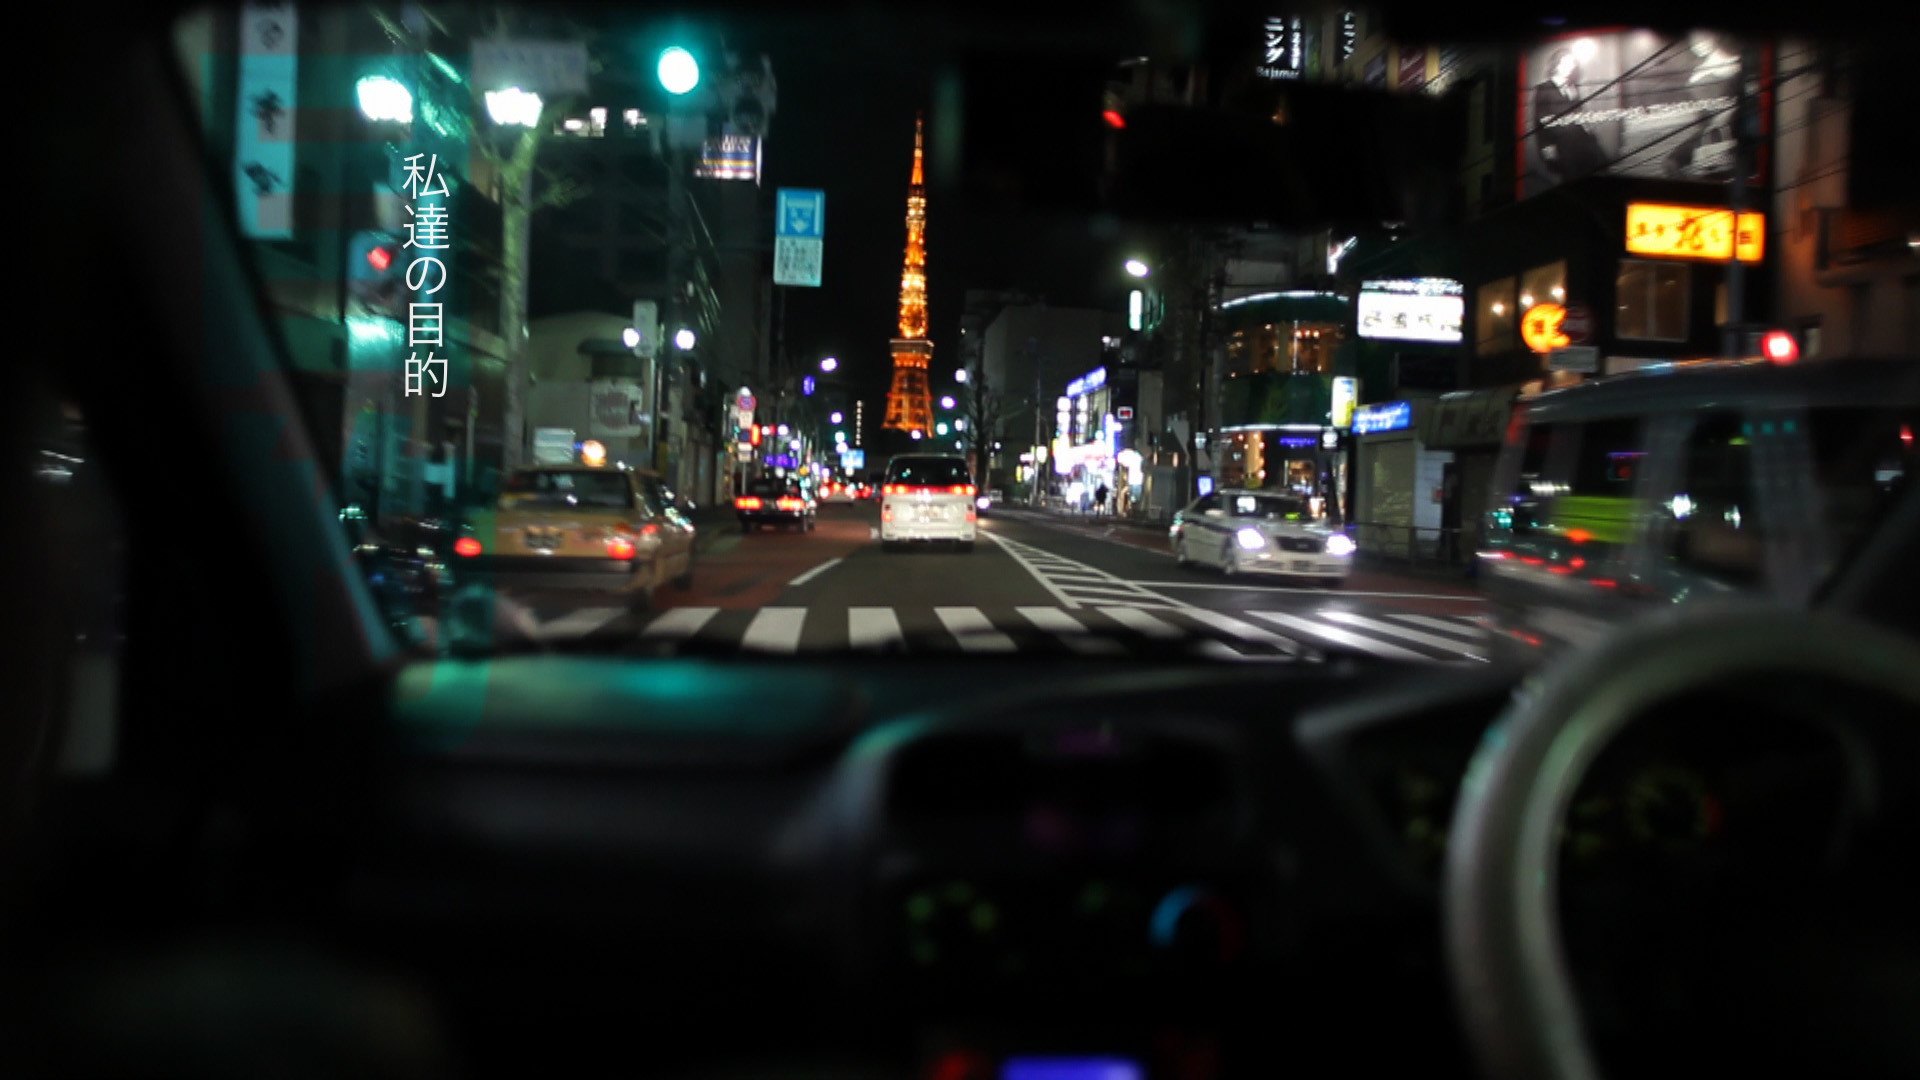 Japan_Night_GRfx_screen_02420.jpg